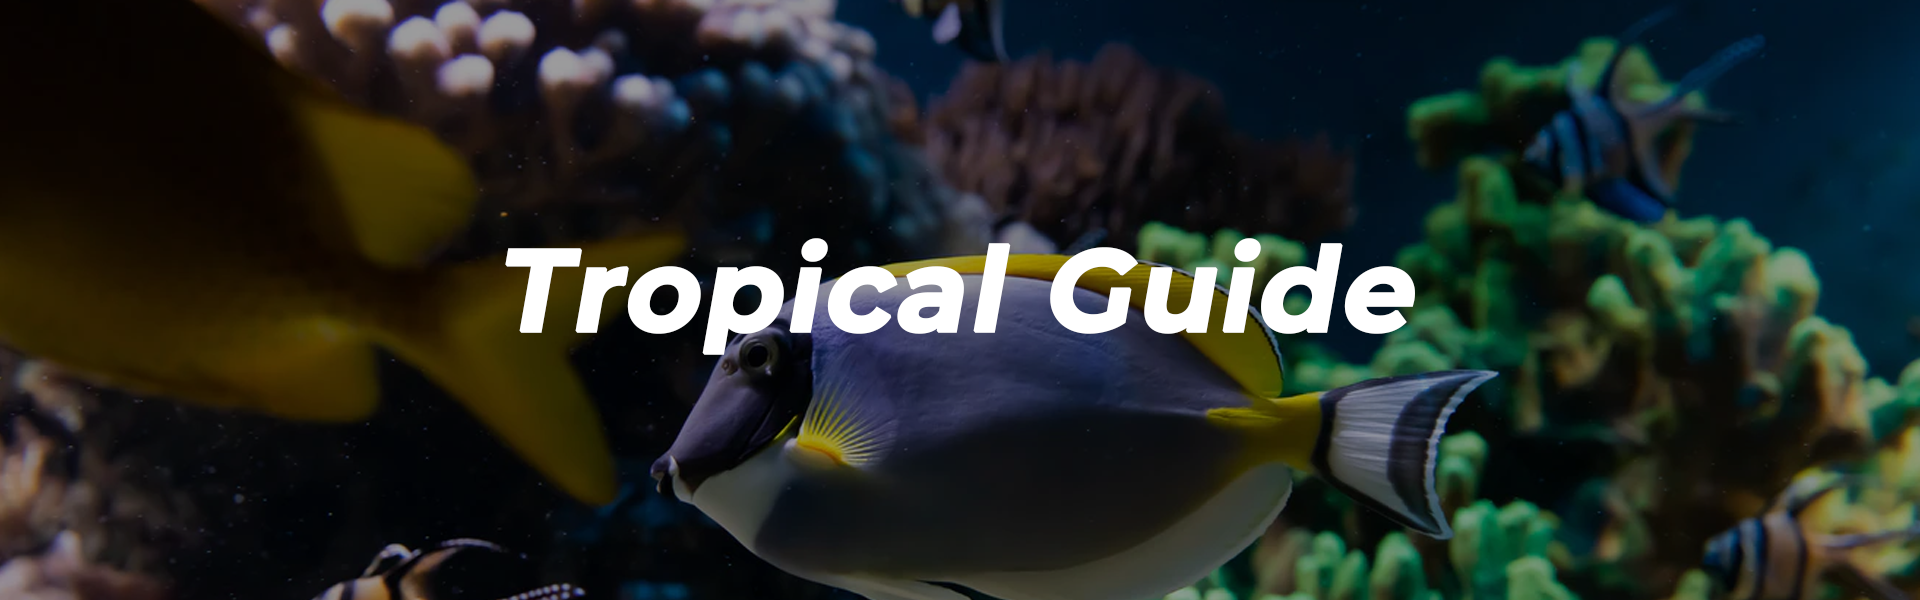 Tropical Guide Banner